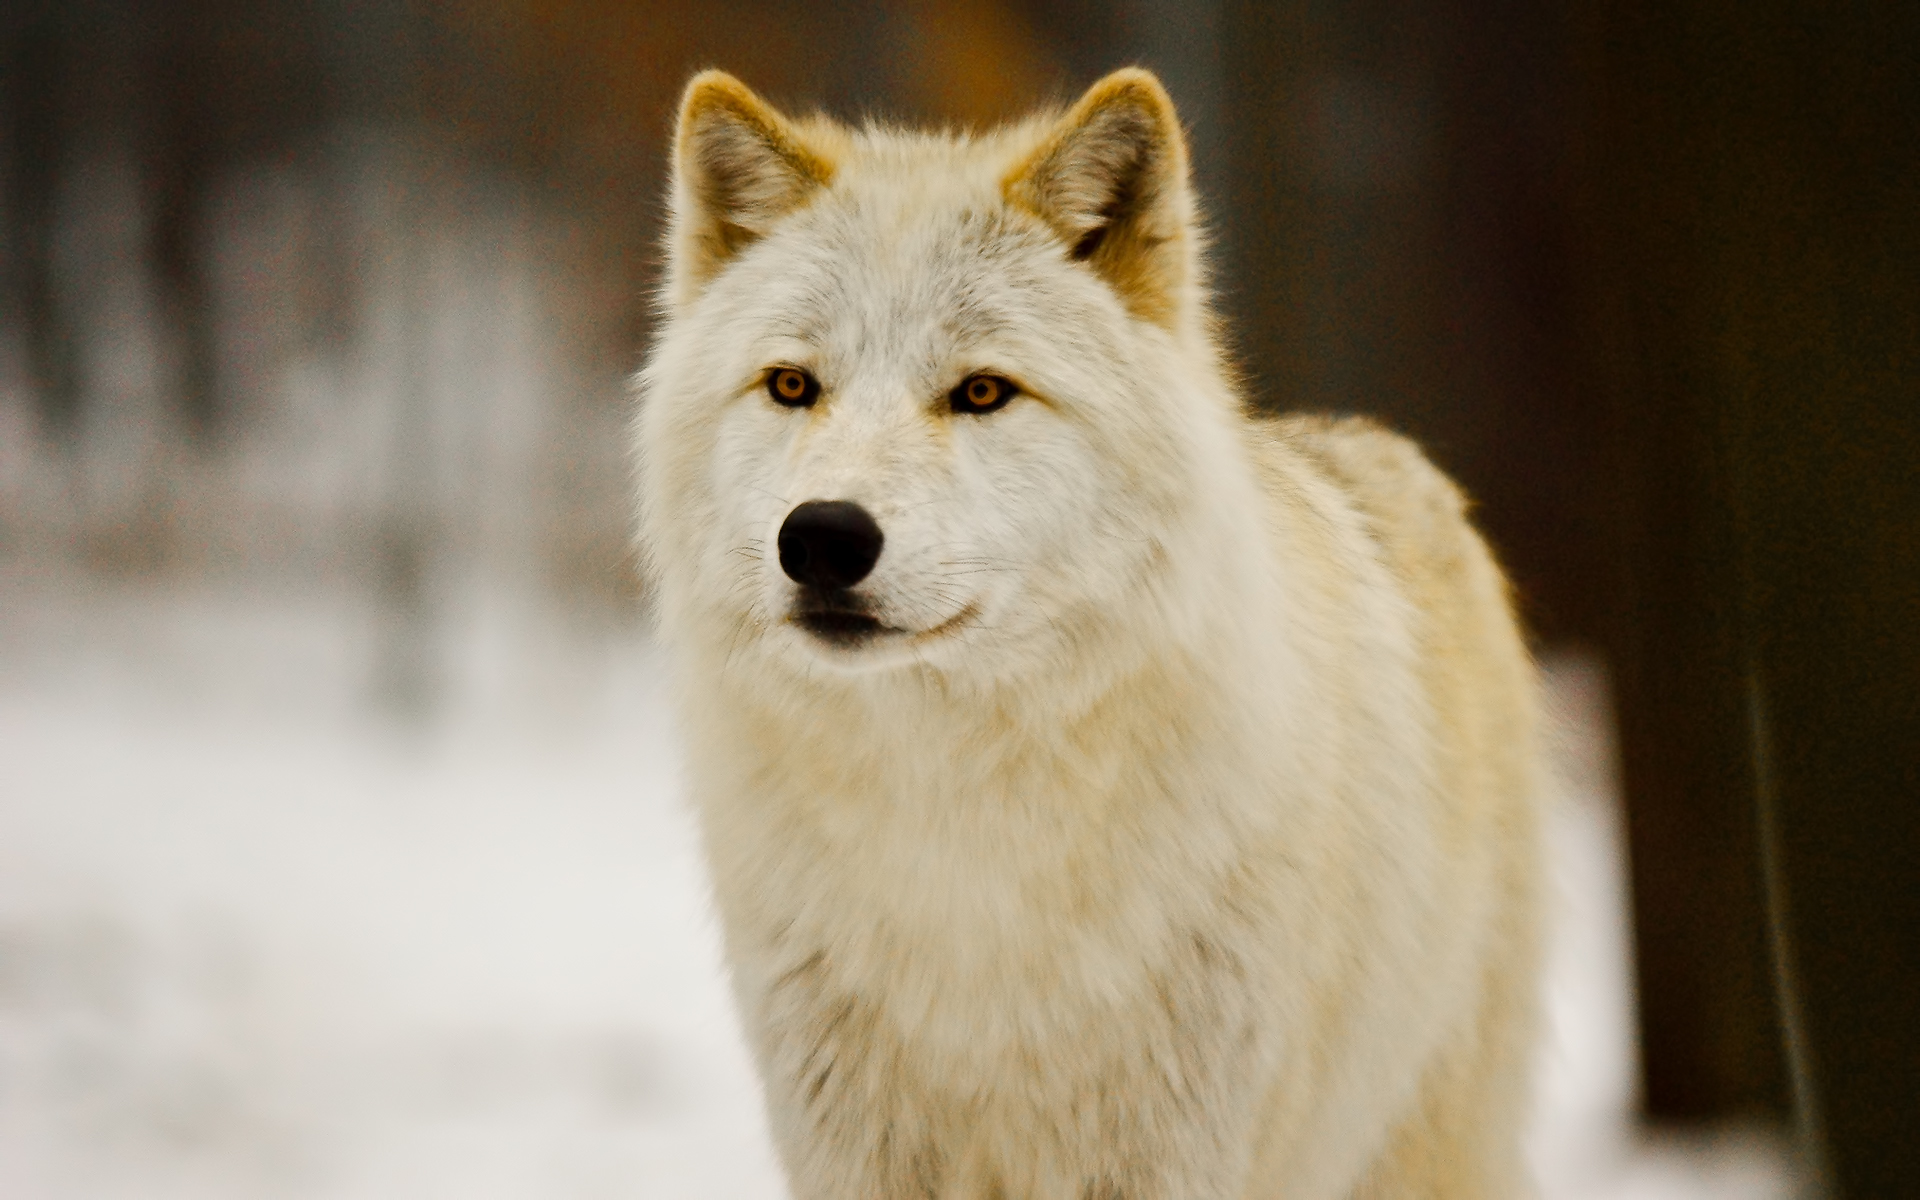 ""\""""Wolves""""""1920|1200|?|en|2|b71f7f0449b283015fb2c1e97ea5d517|False|UNLIKELY|0.2814275920391083